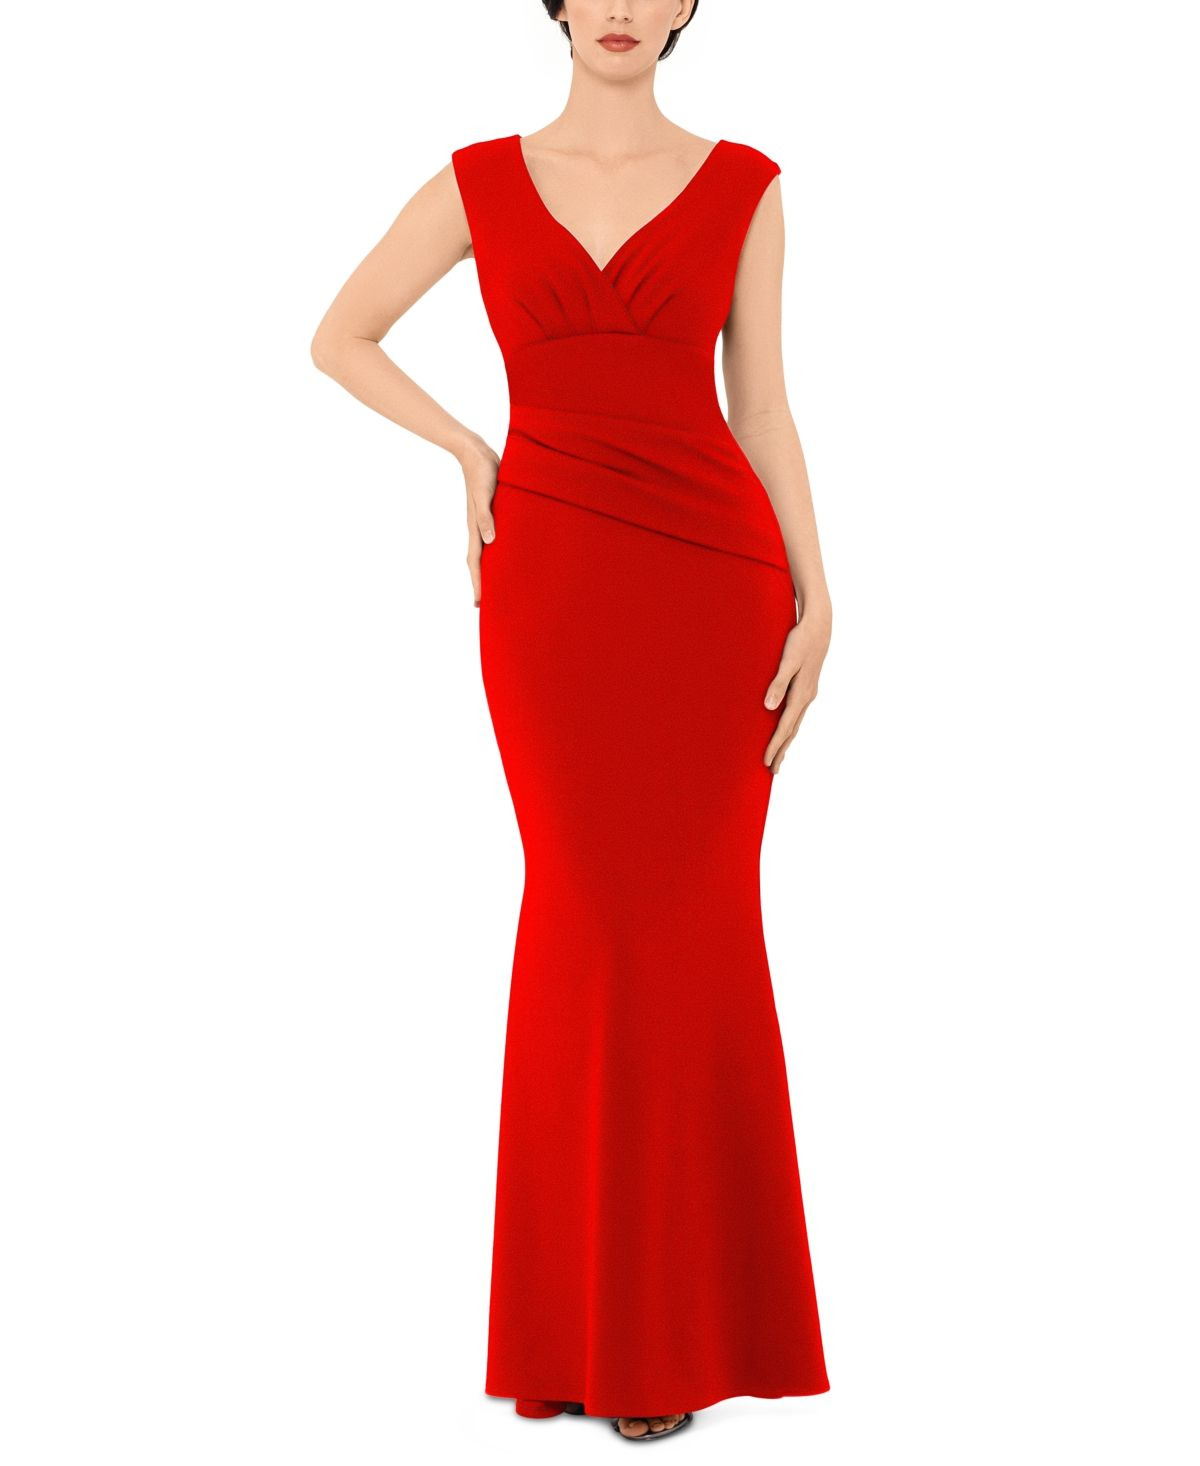 Betsy /& Adam Womens Plus One Shoulder Full Length Evening Dress